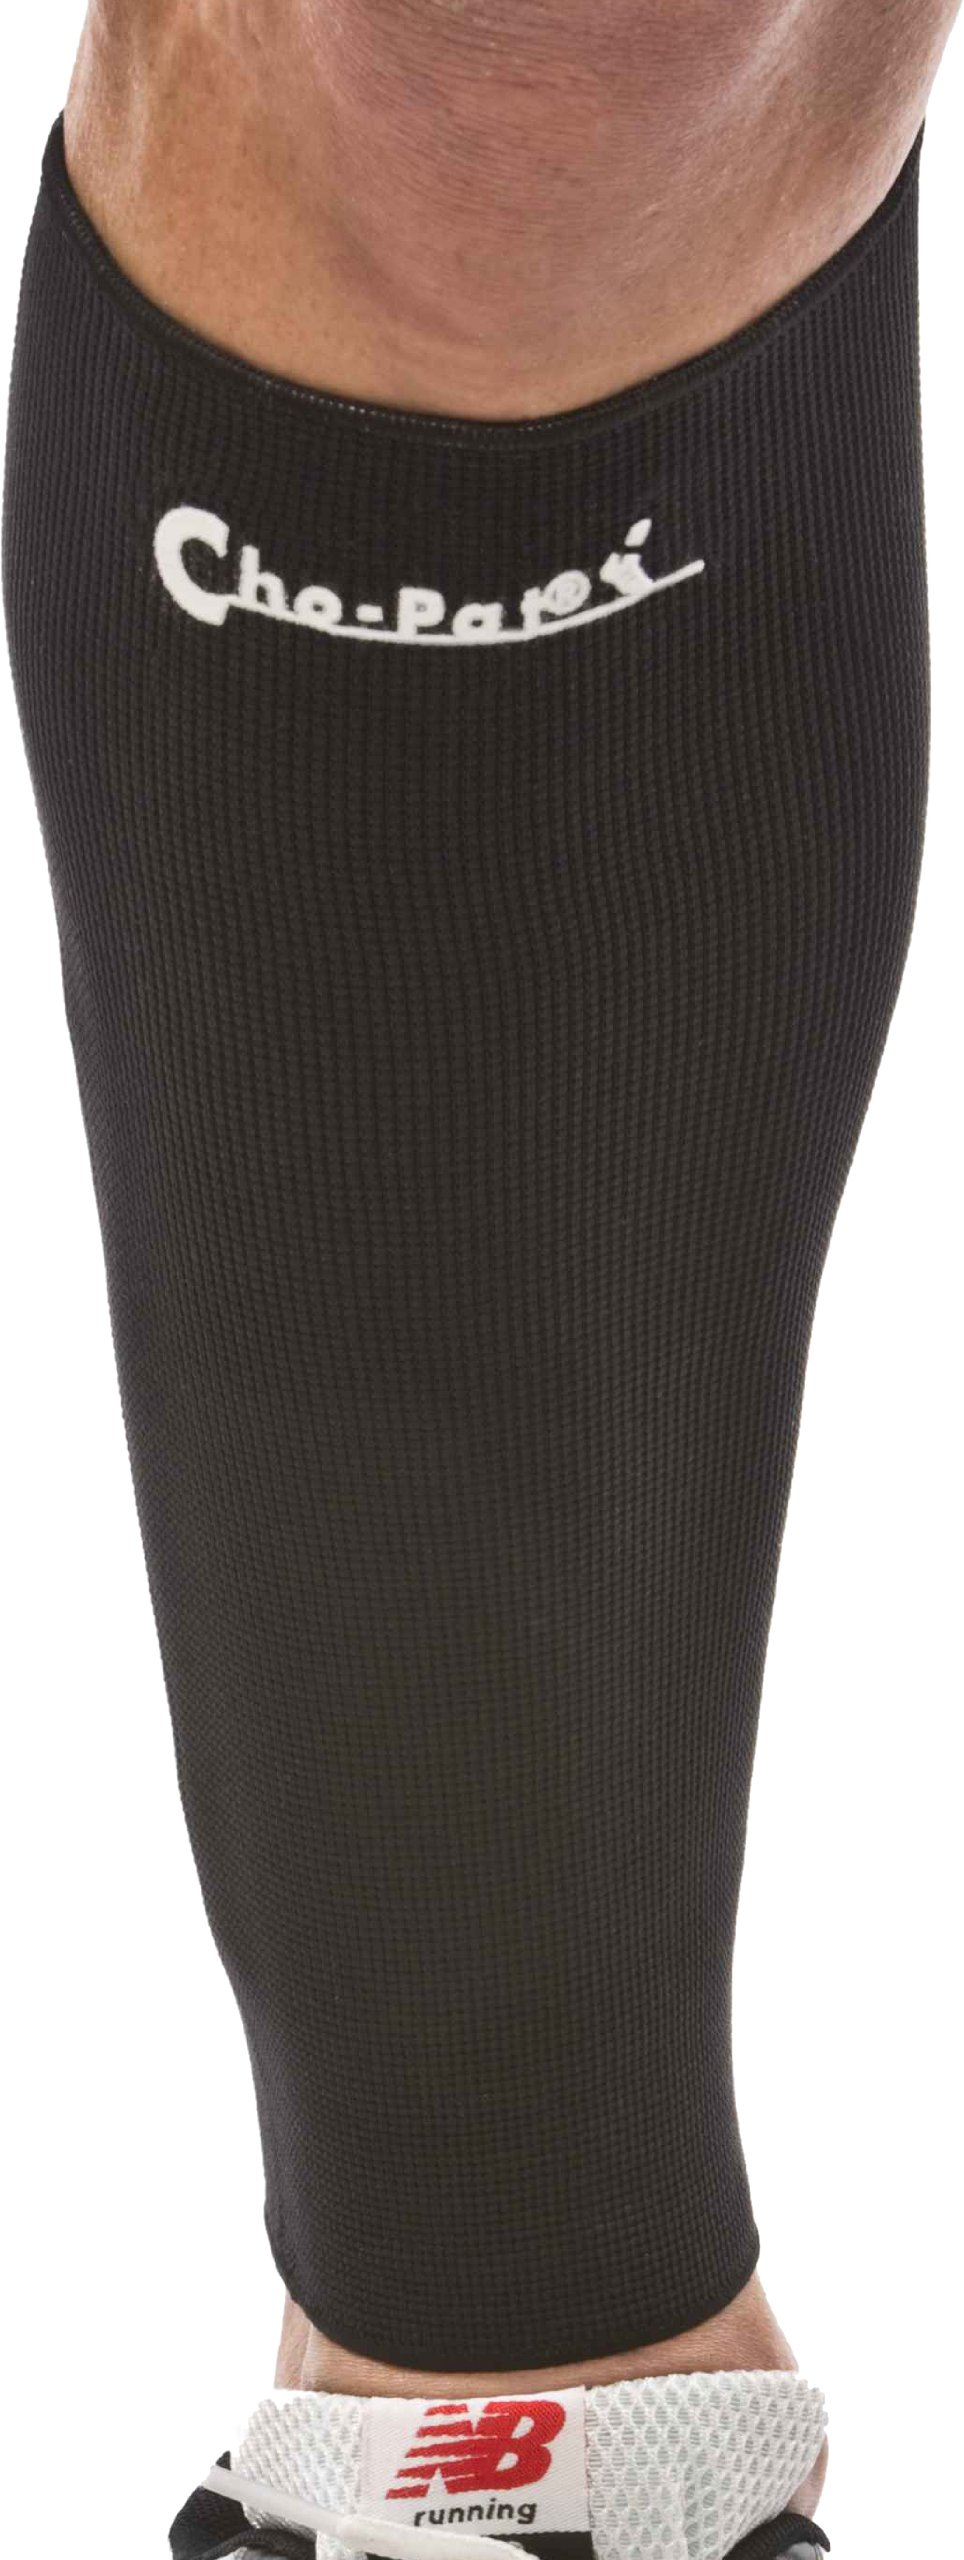 Cho-Pat Calf Compression Sleeve - Delivers Support, Reduces Pain, and Promotes Healing for Women and Men (Medium, 11''-14.5'')